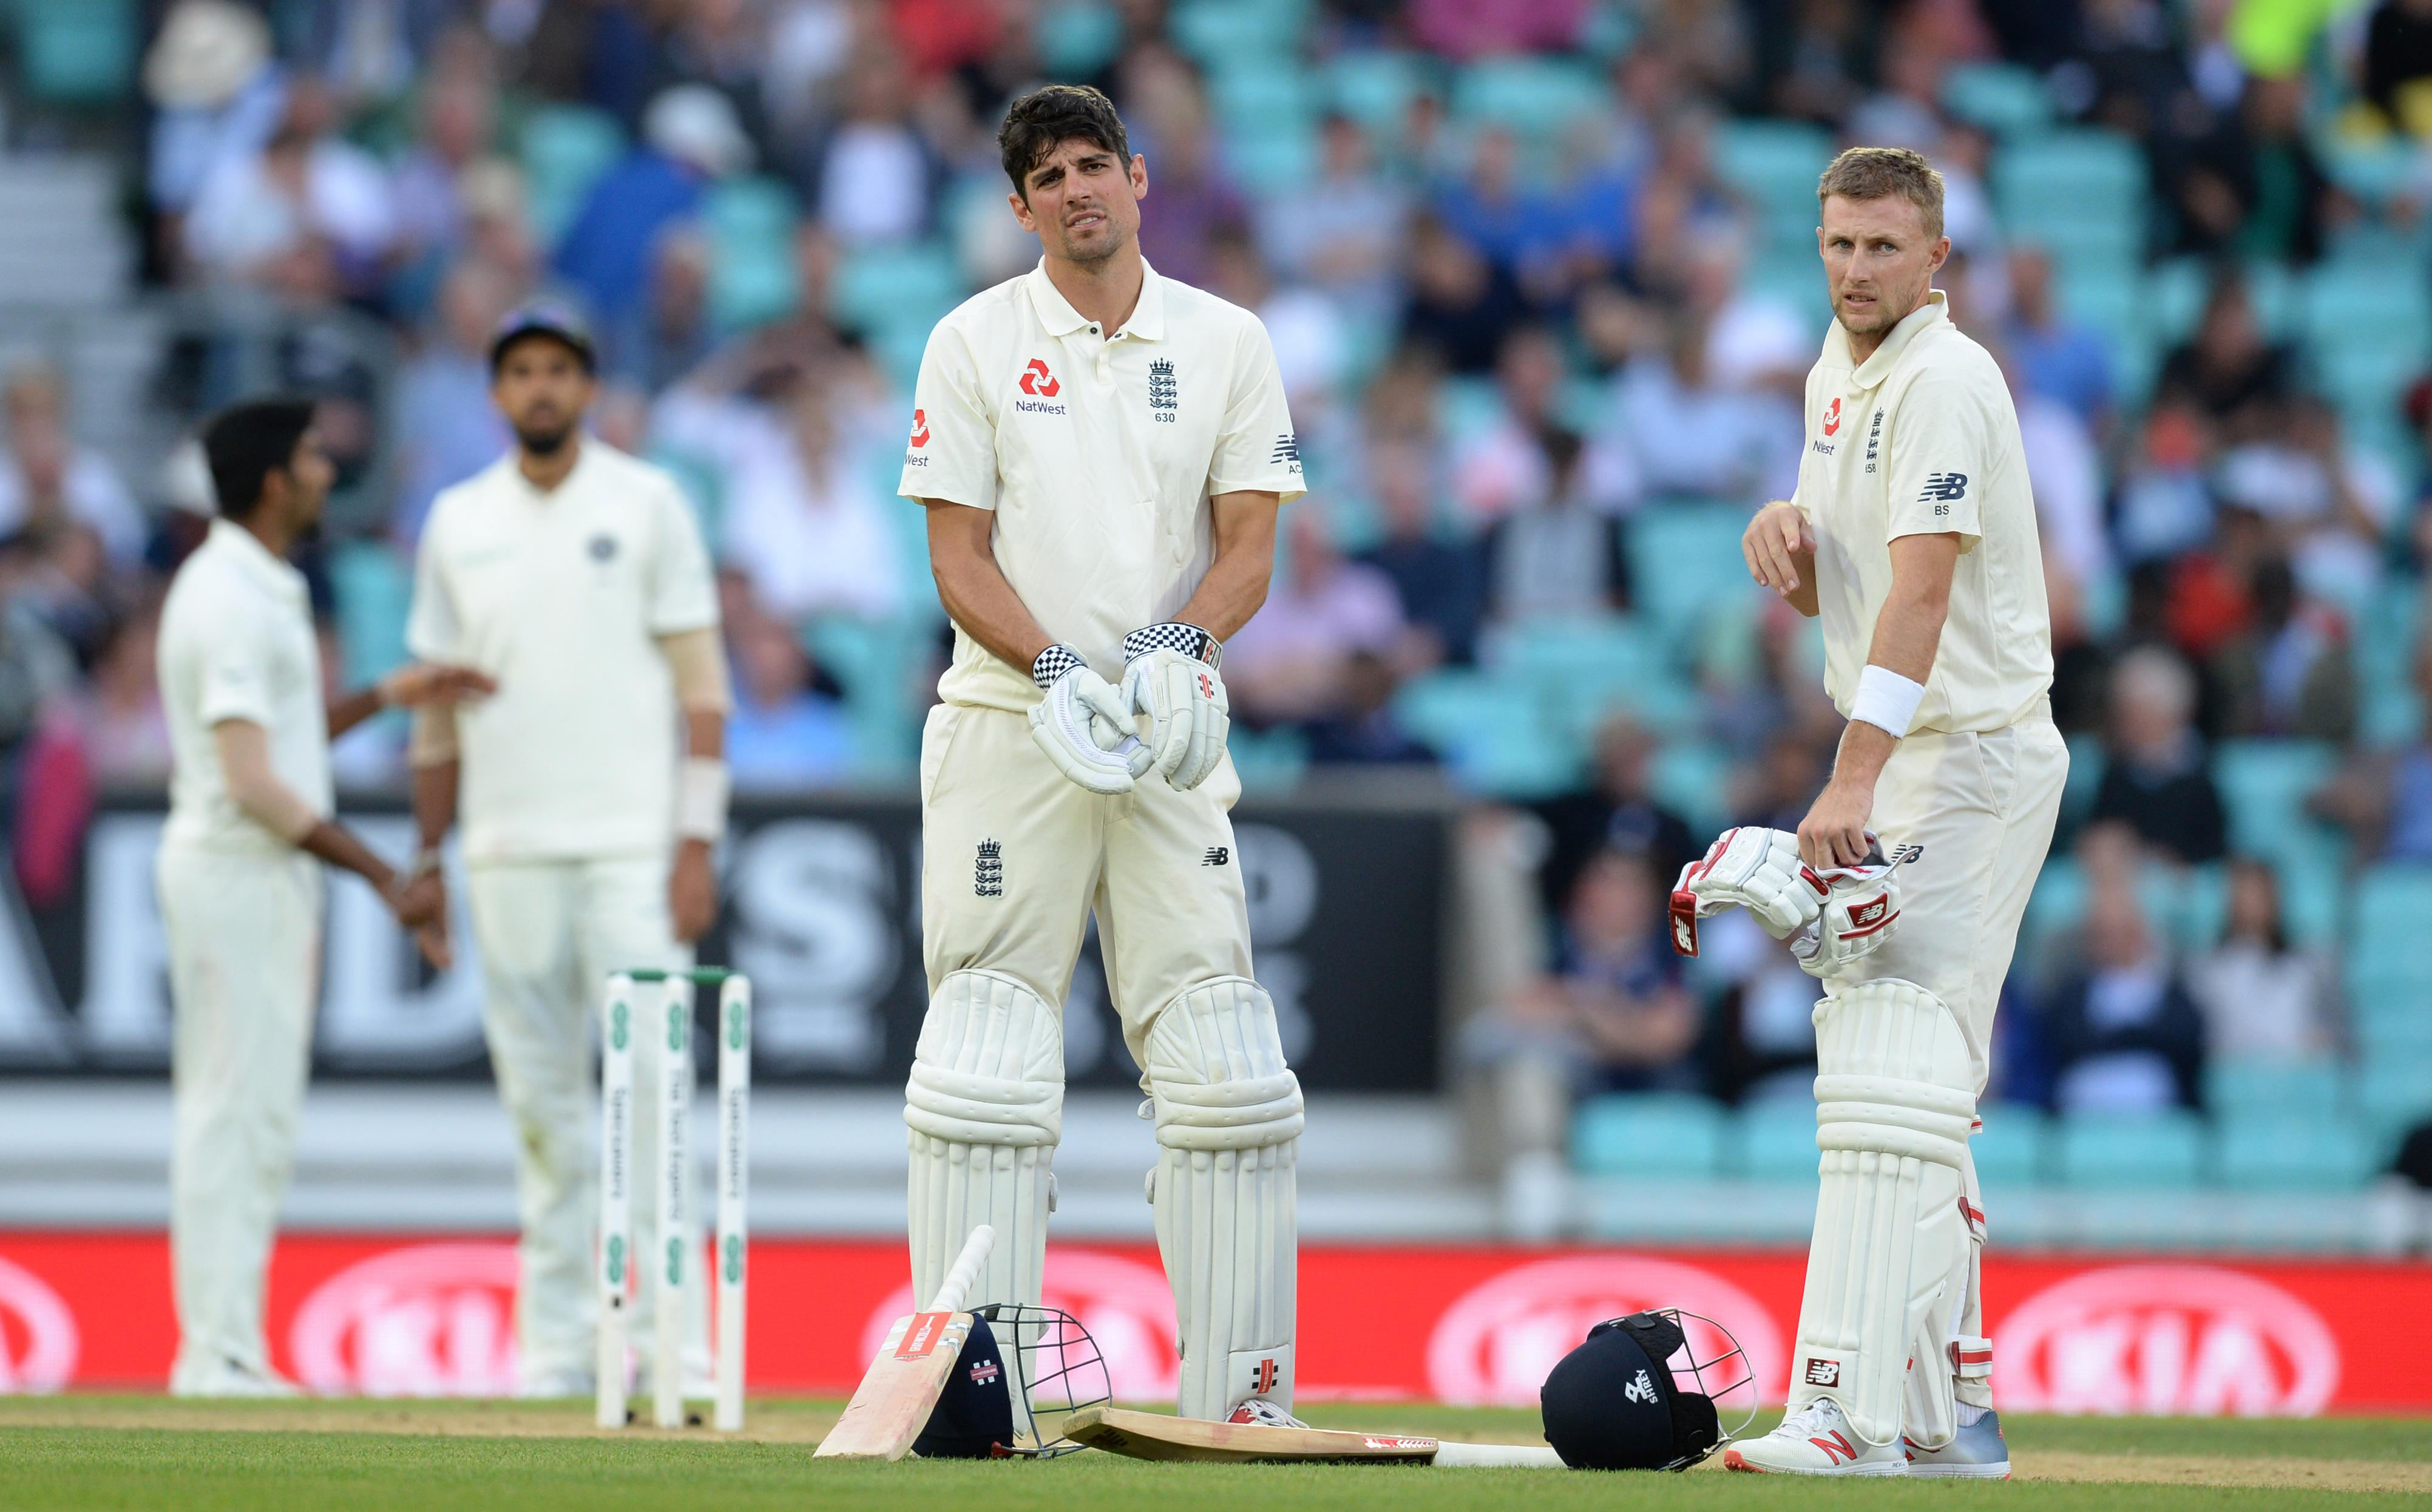 Main men Alastair Cook and Joe Root put on an unbeaten 52 for the third wicket on day three